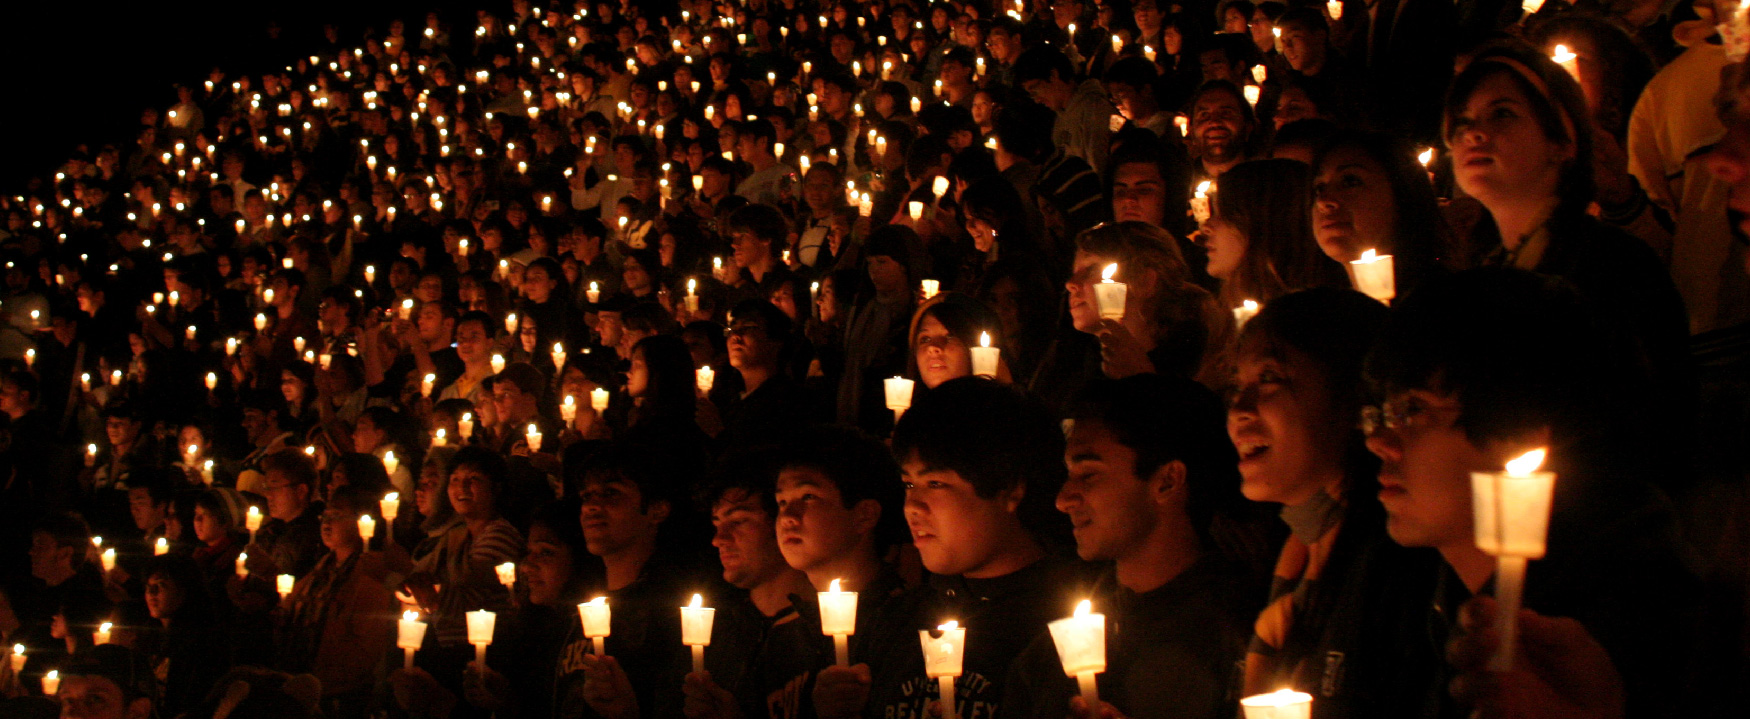 A photo shows a massive group of young girls and boys holding candles at a vigil.